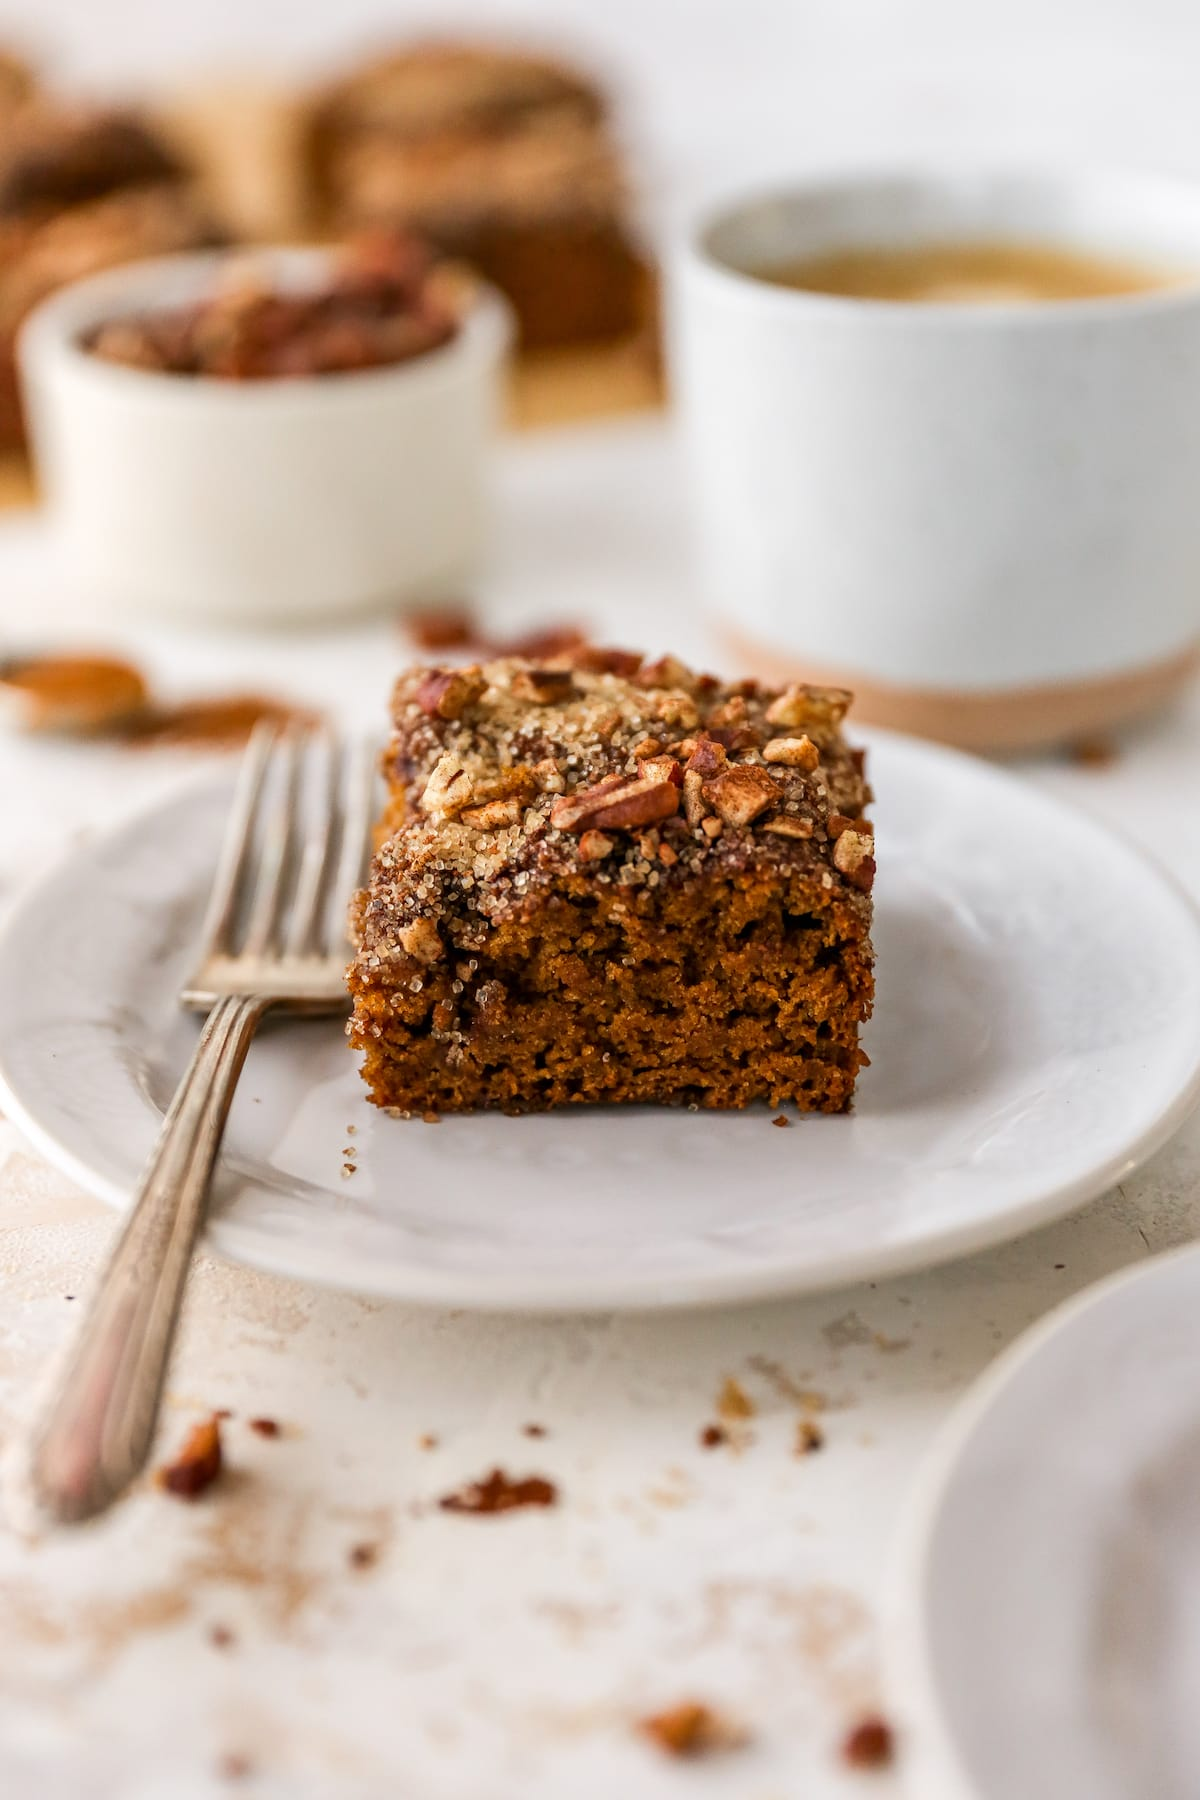 Slice of coffee cake on a plate with a fork.